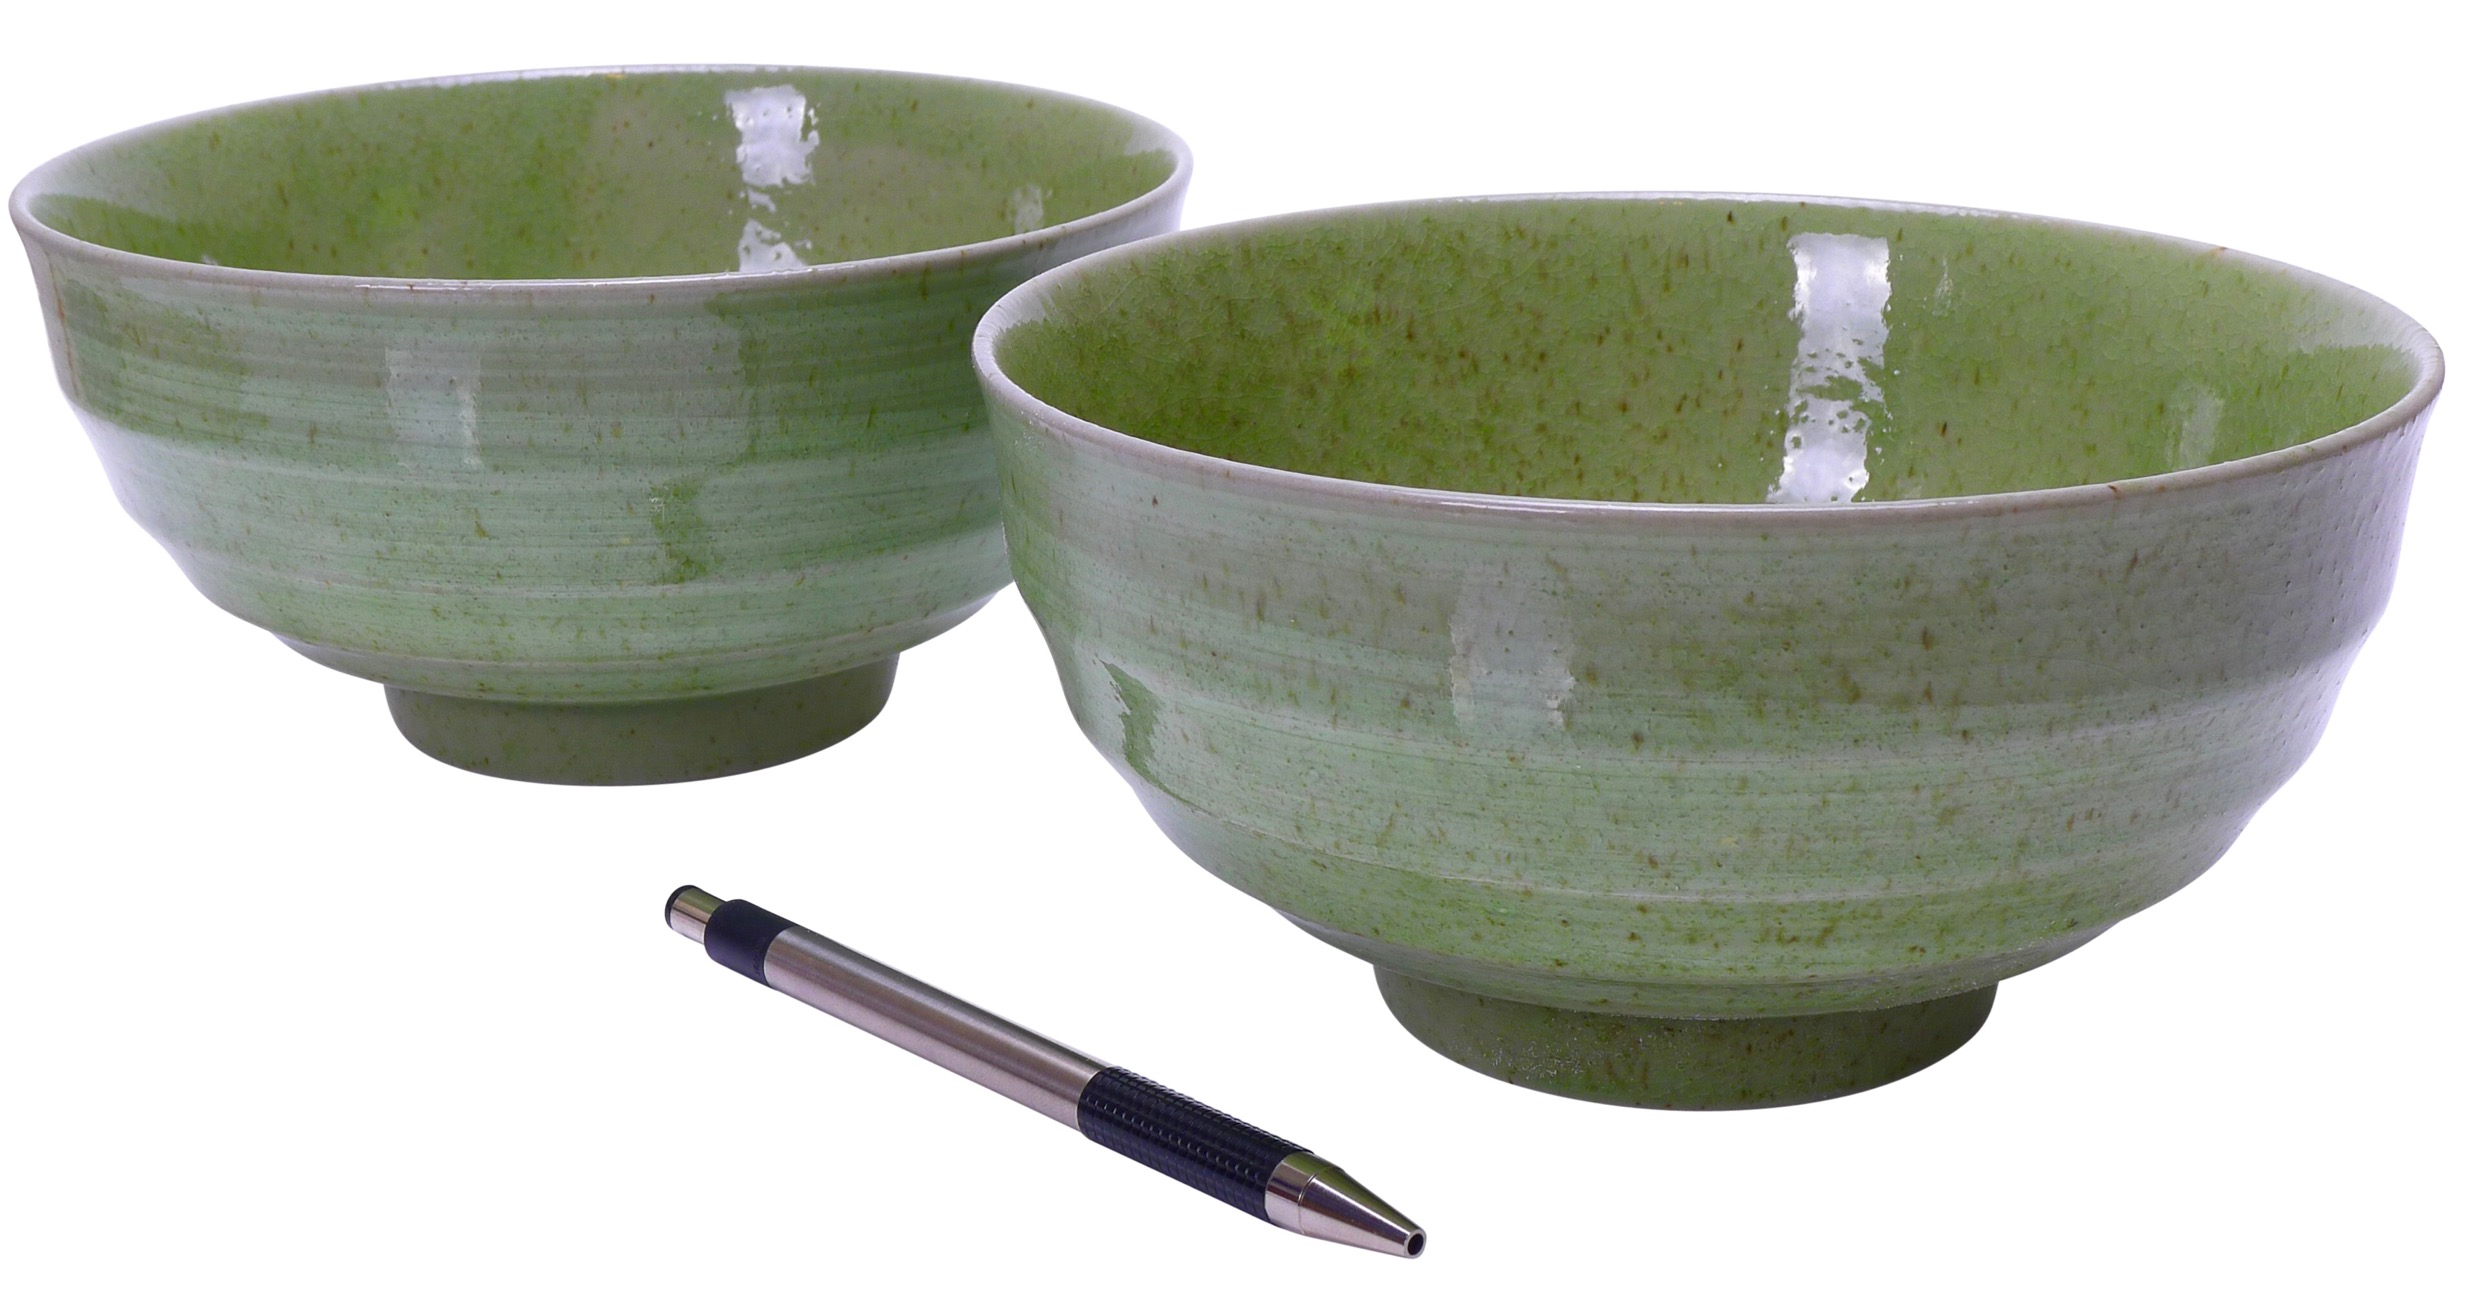 Image of Stoneware Bowls, Green, 6.75 x 3.25-Inch, Set Of Two